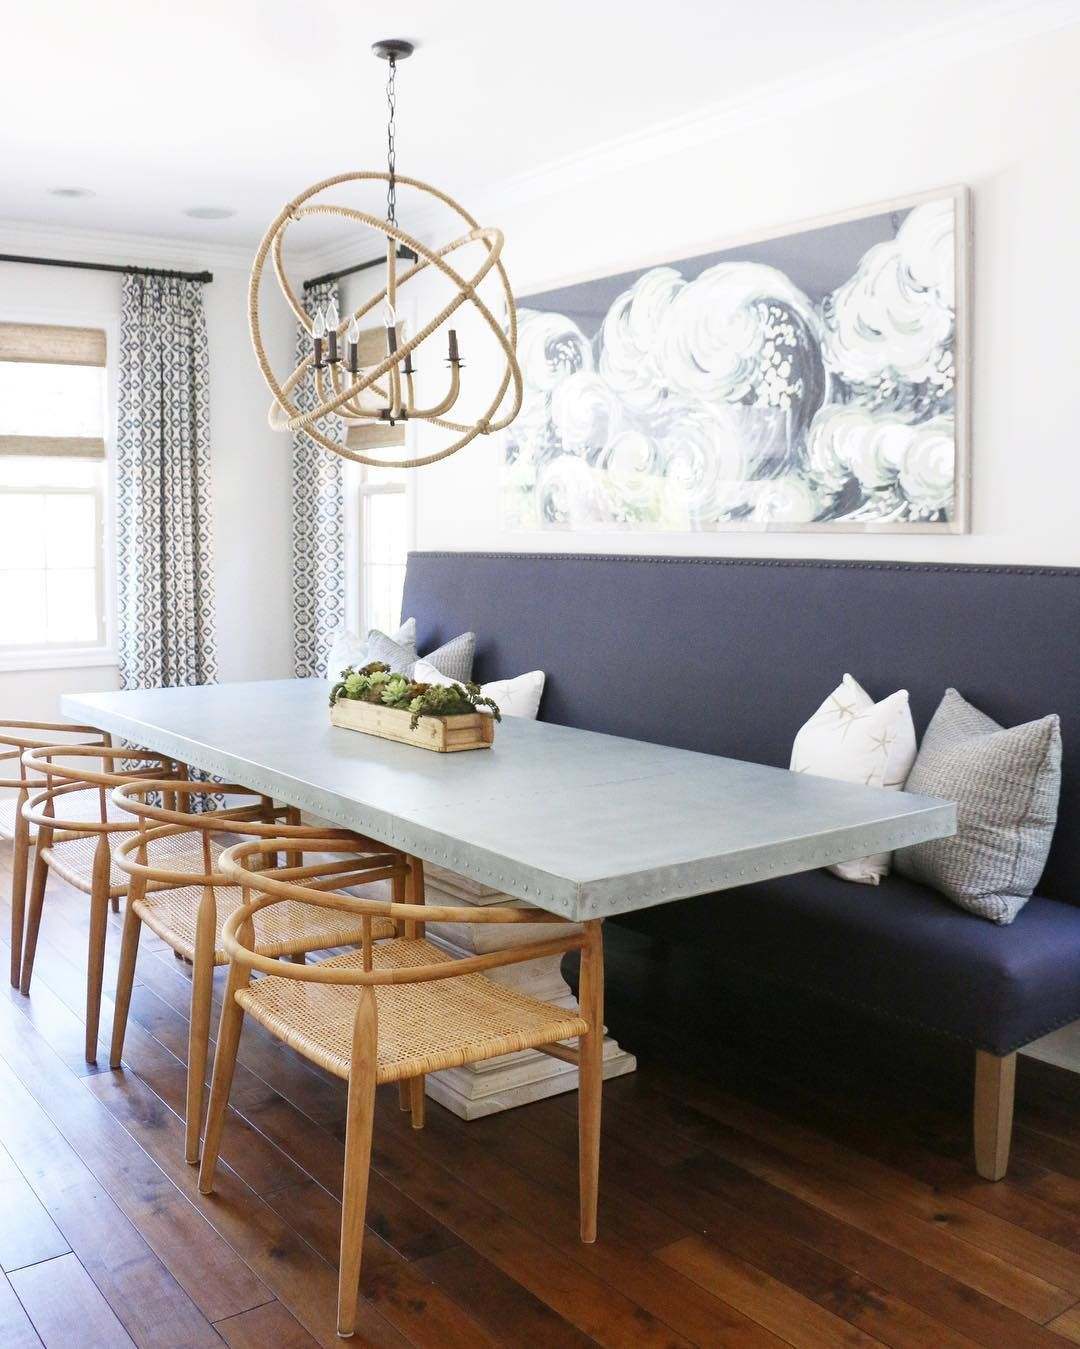 Dining Room Ideas Try A Banquette In Place Of Chairs For More Style And Seating Space Dining Room Seating Dining Table With Bench Dining Room Banquette